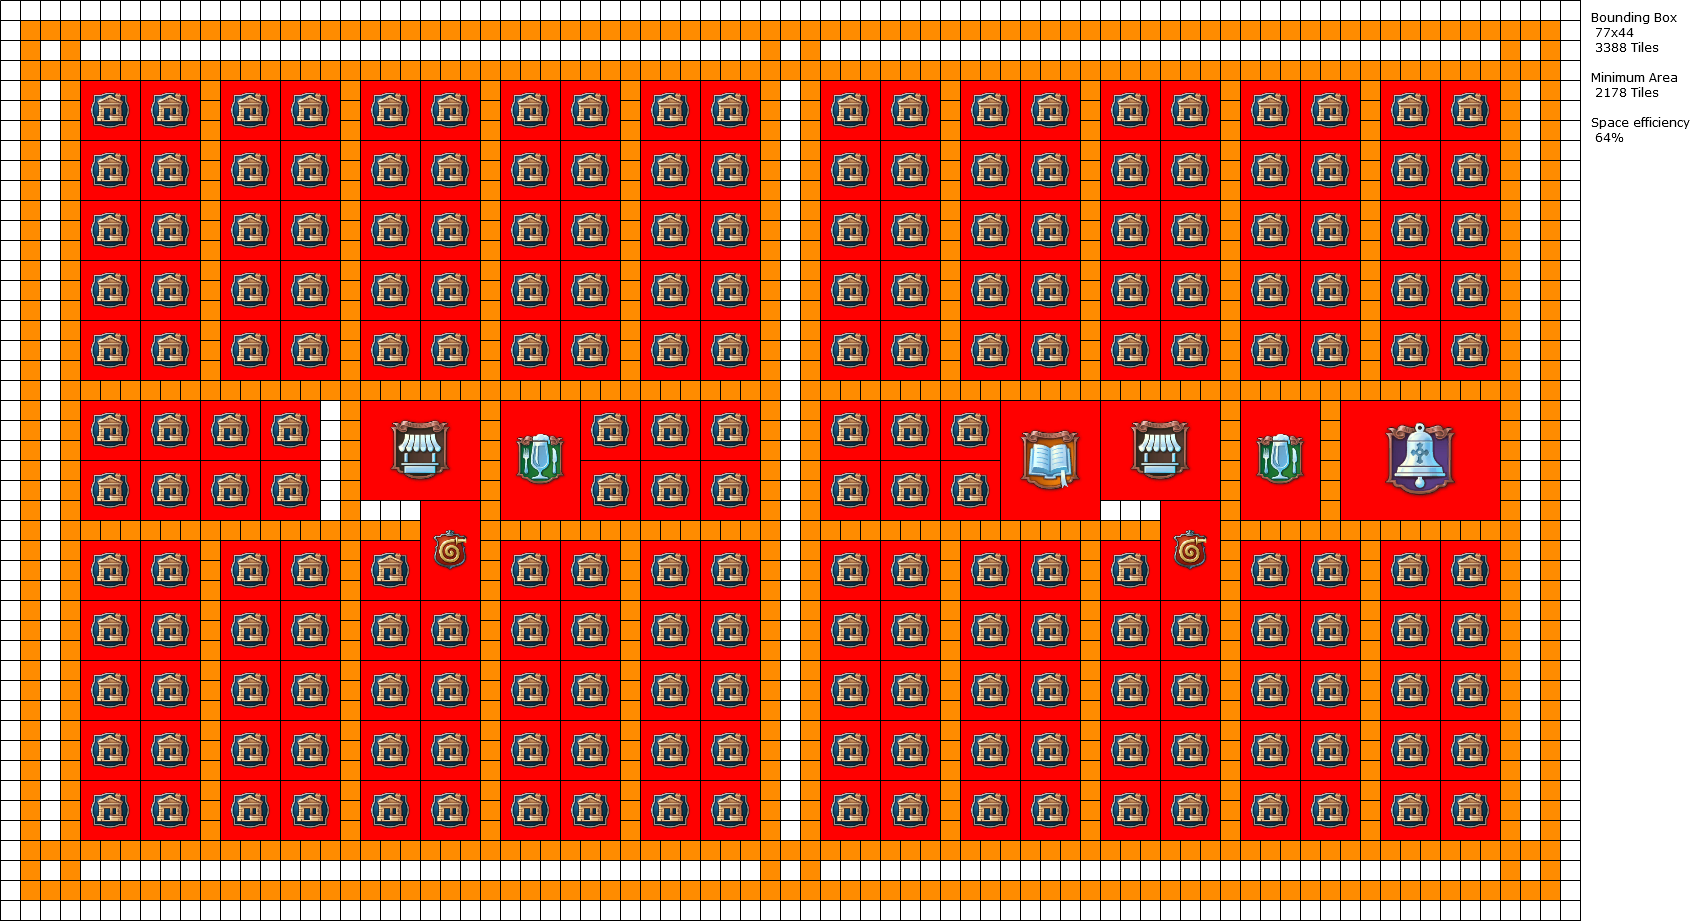 power plant layout fire red city layouts anno 1800 wiki fandom  city layouts anno 1800 wiki fandom